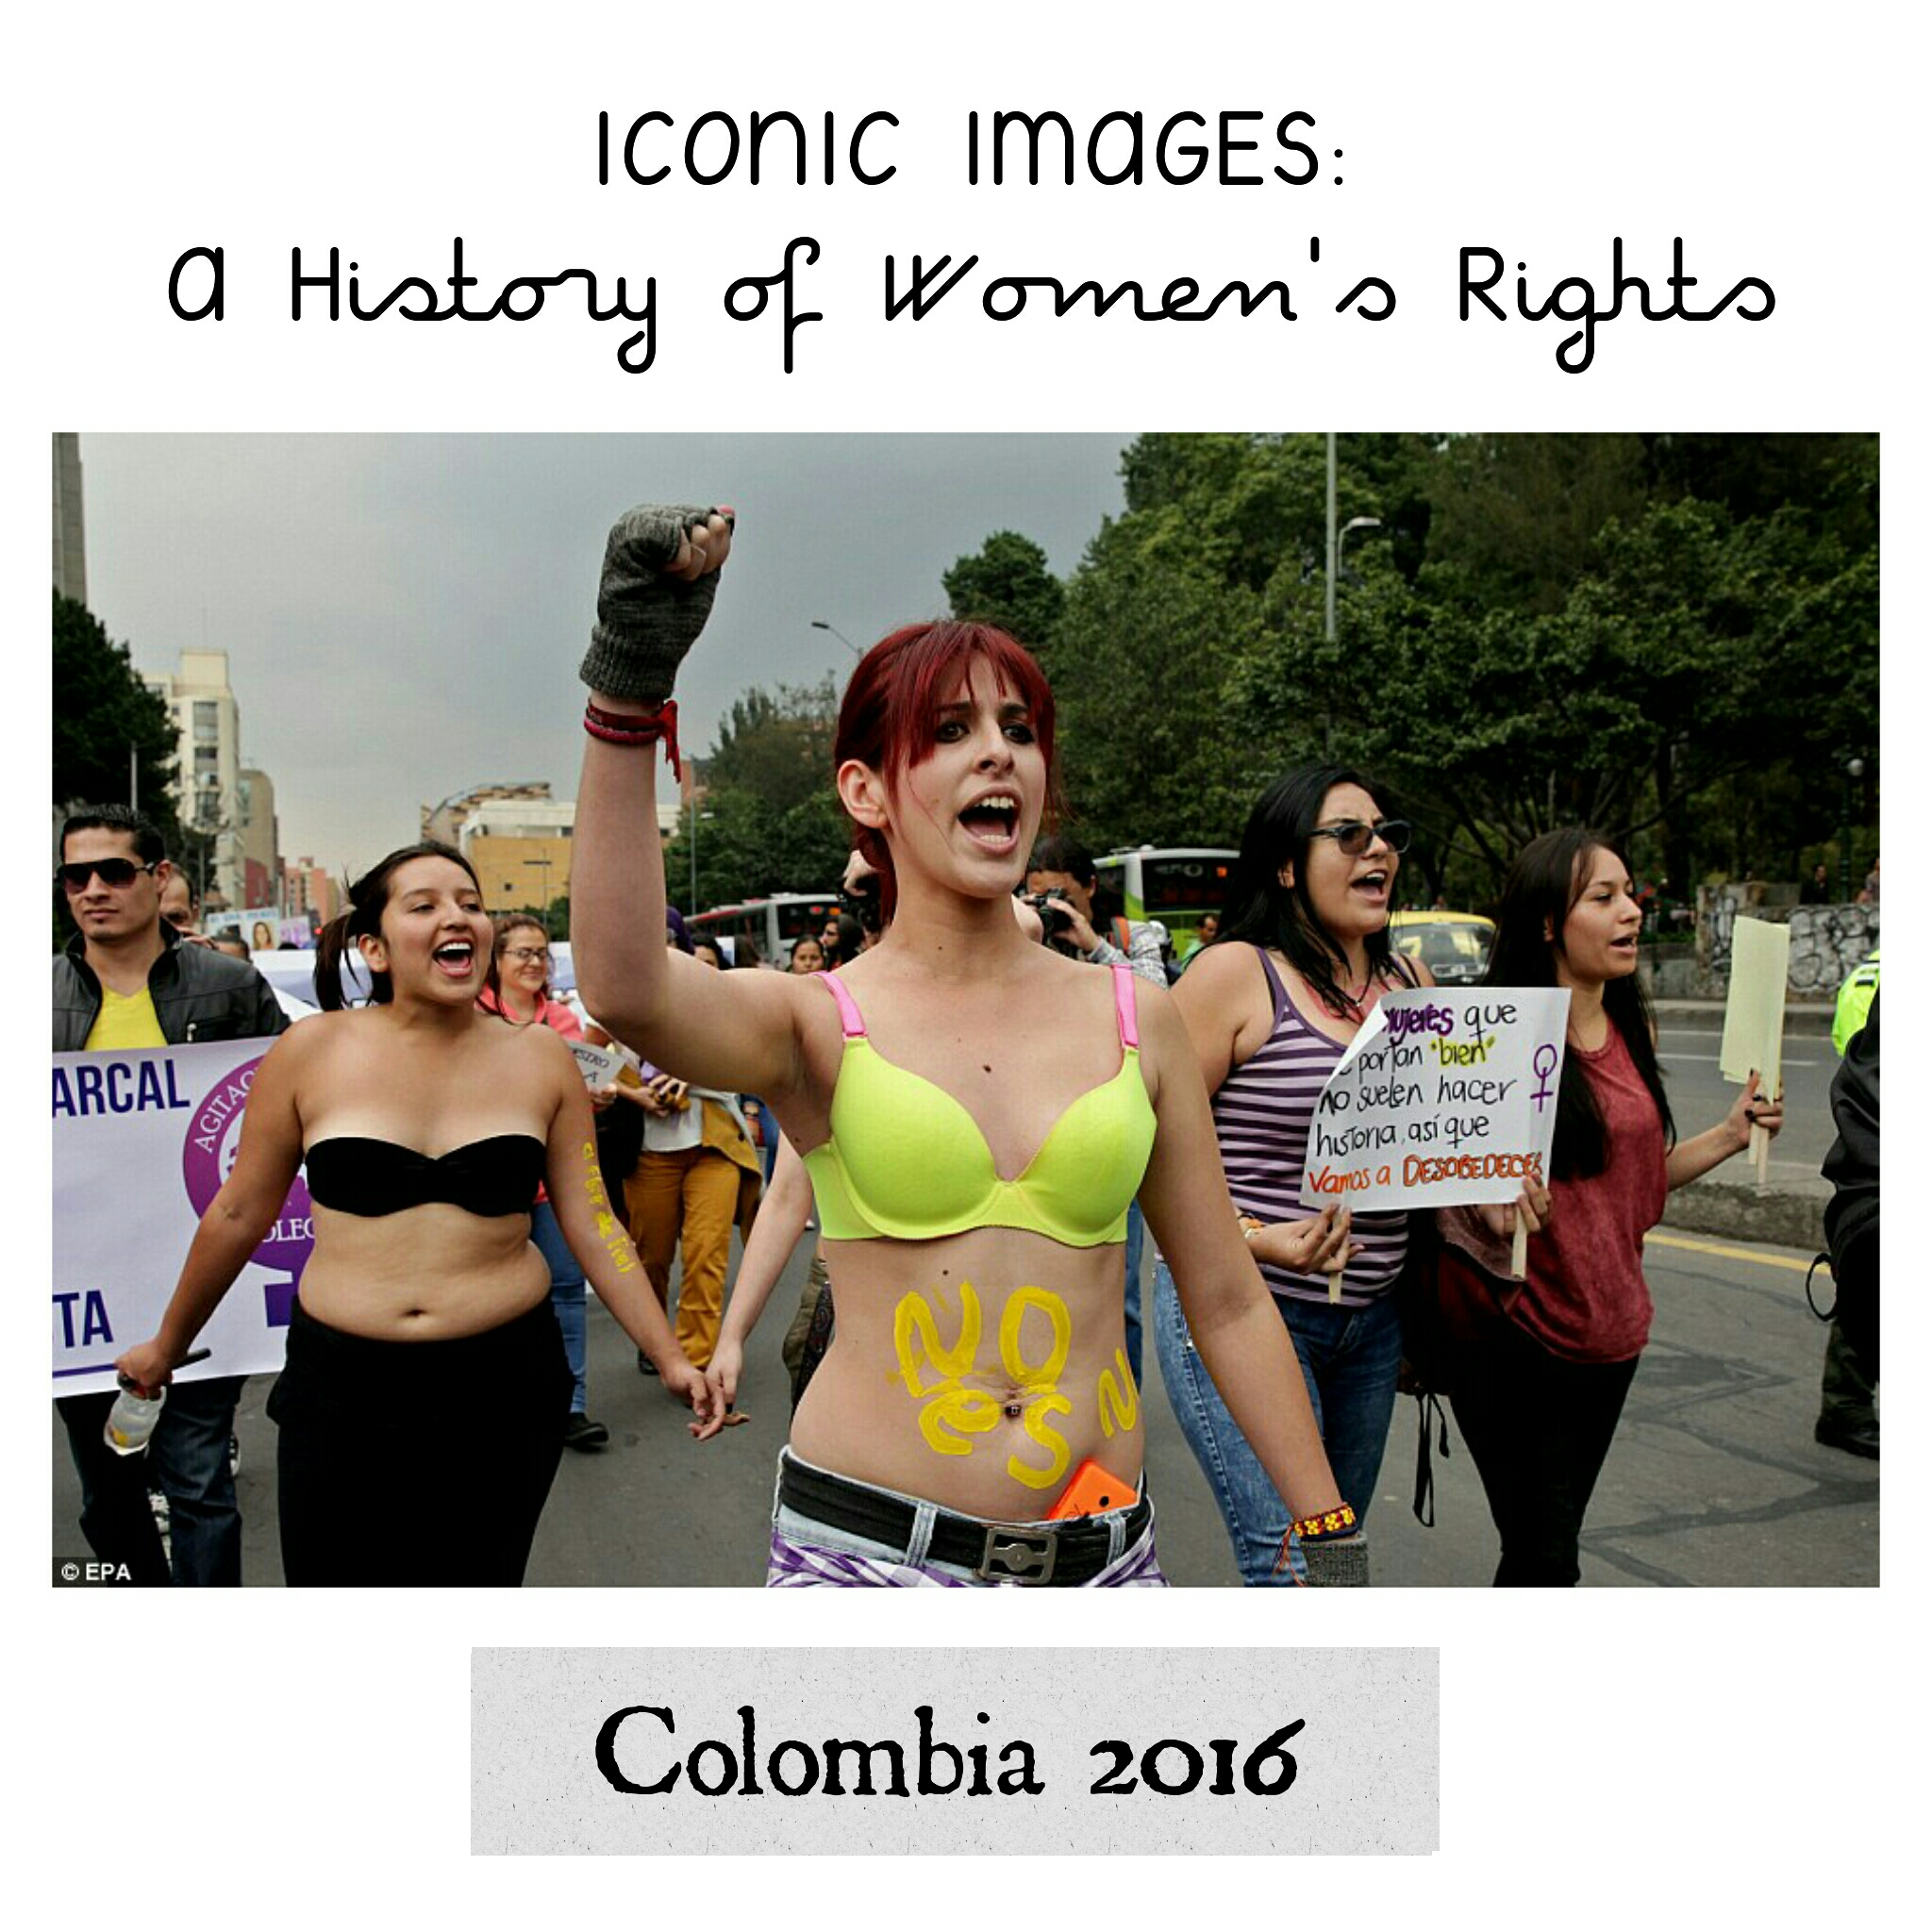 - Women take part in a Slut Walk across Bogota.